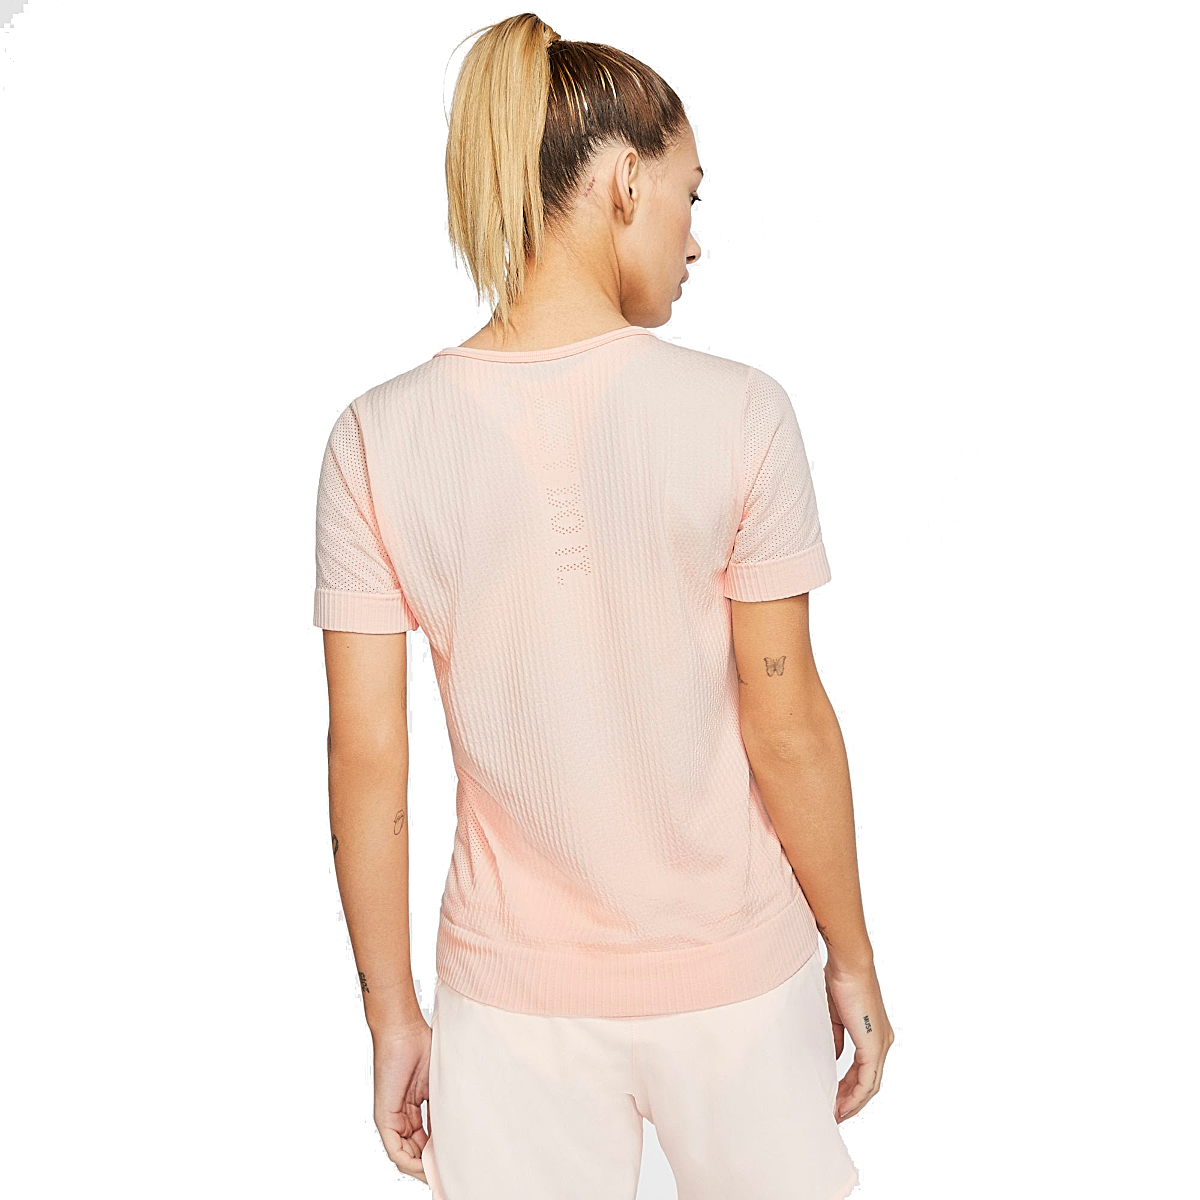 Women's Nike Infinite Short-Sleeve - Color: Washed Coral - Size: XS, Washed Coral, large, image 2